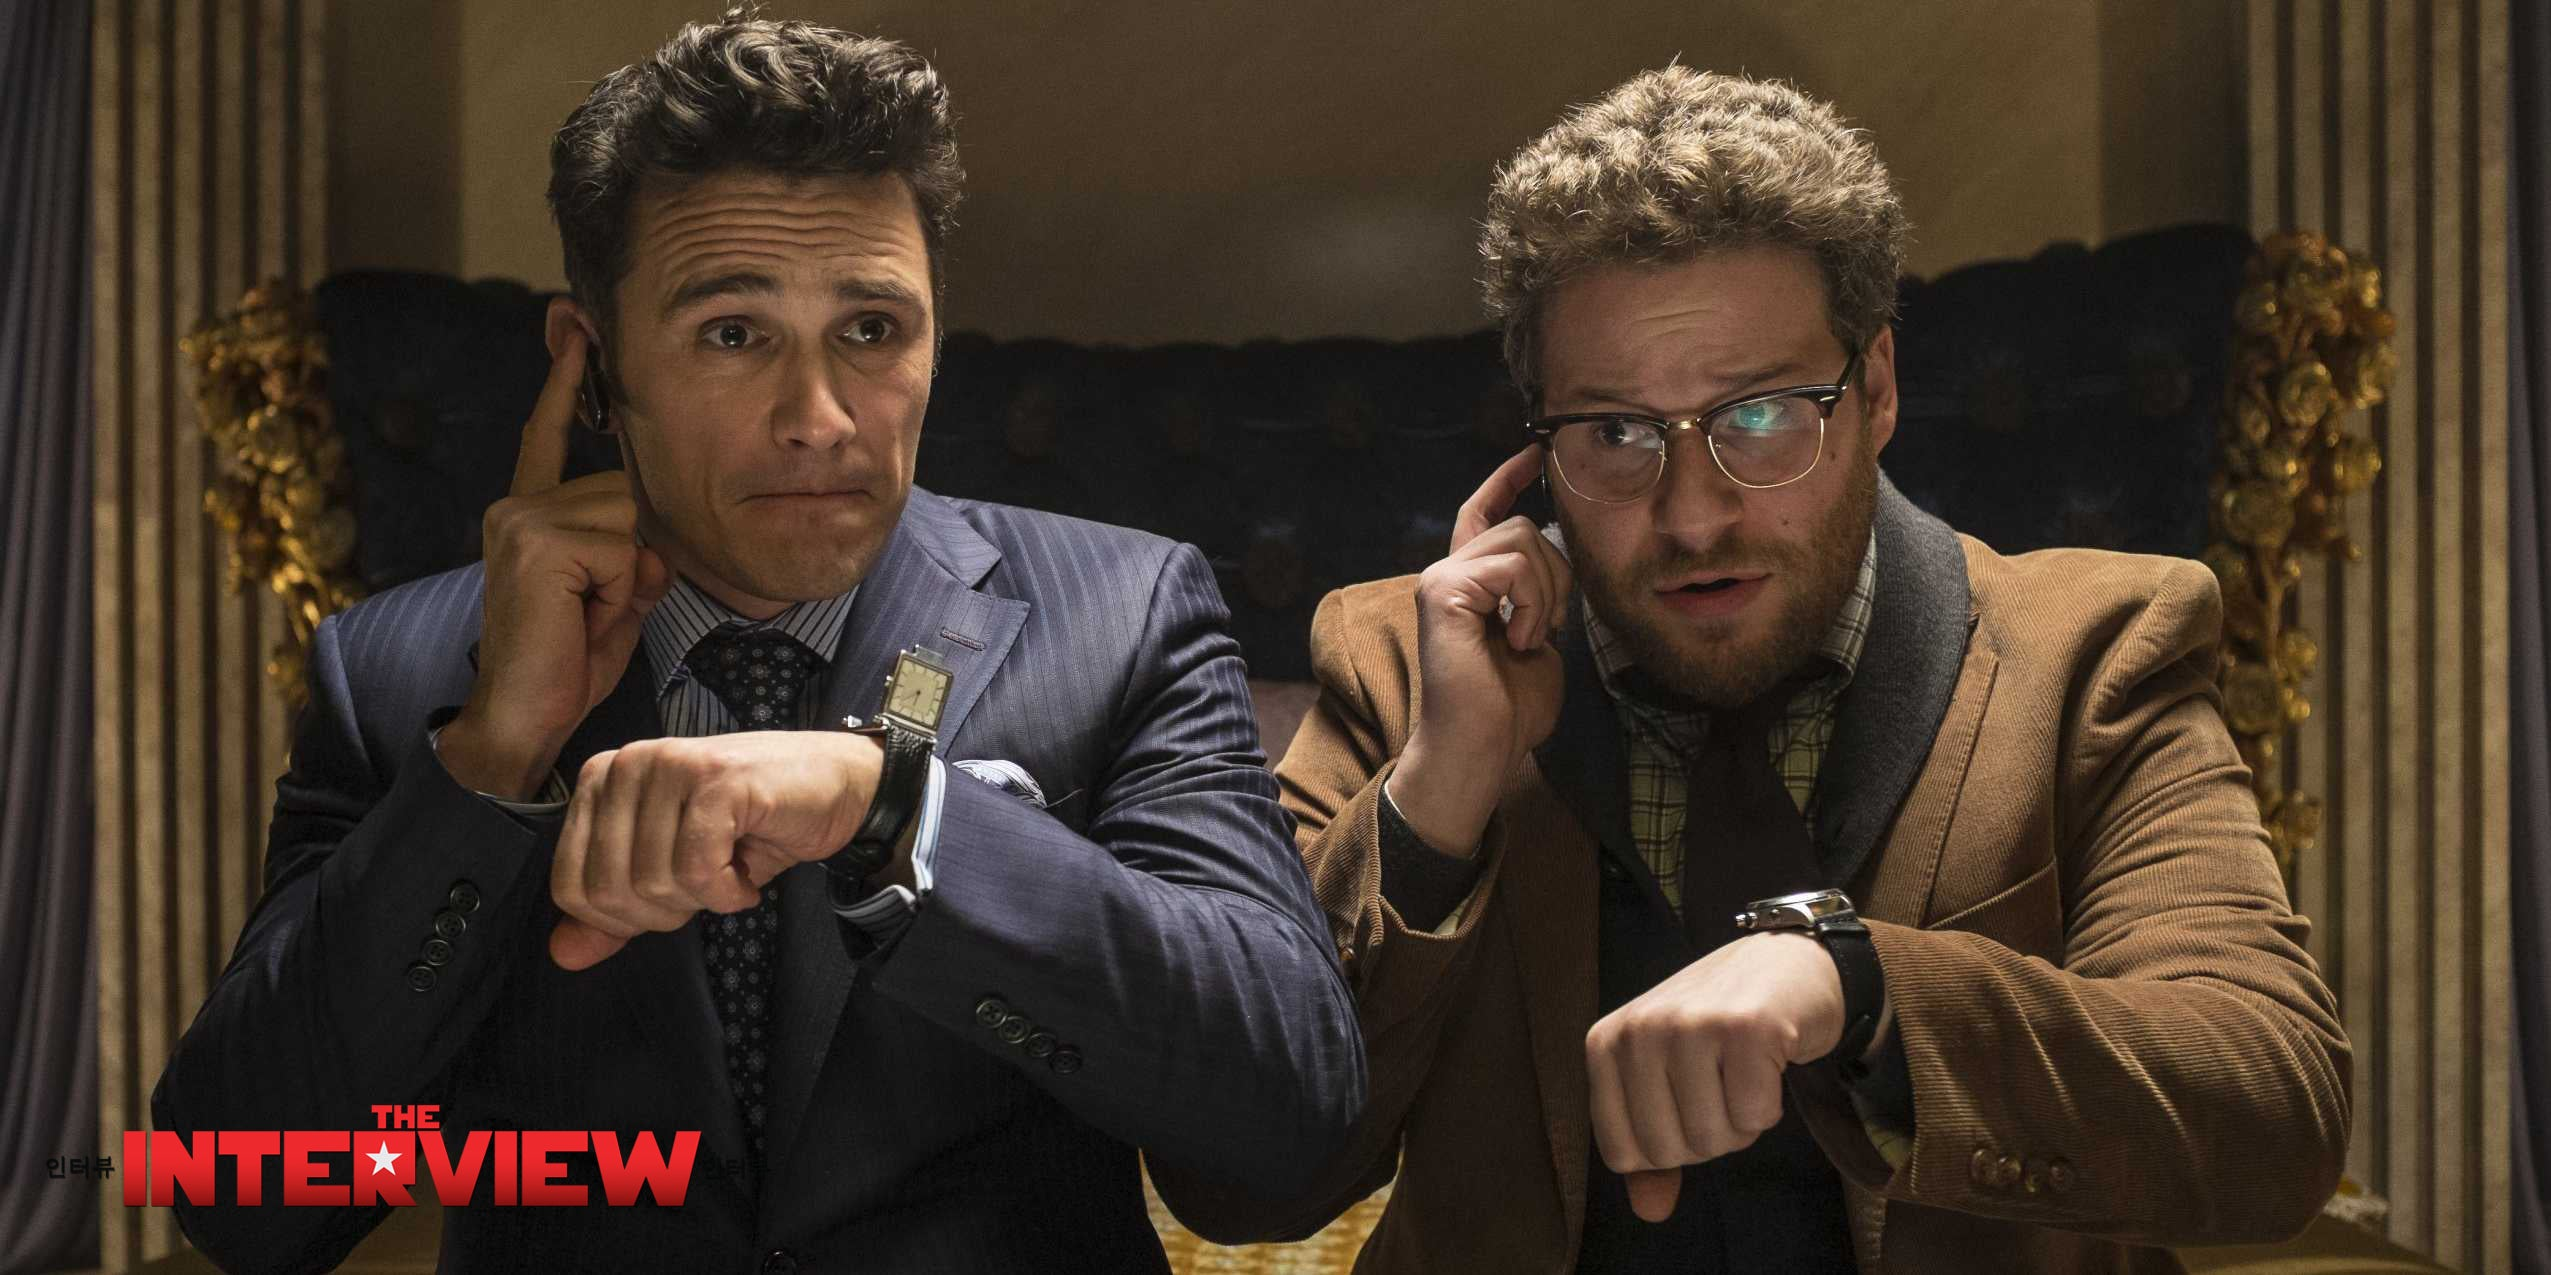 Hackers Demand Sony Pictures Kill The Interview